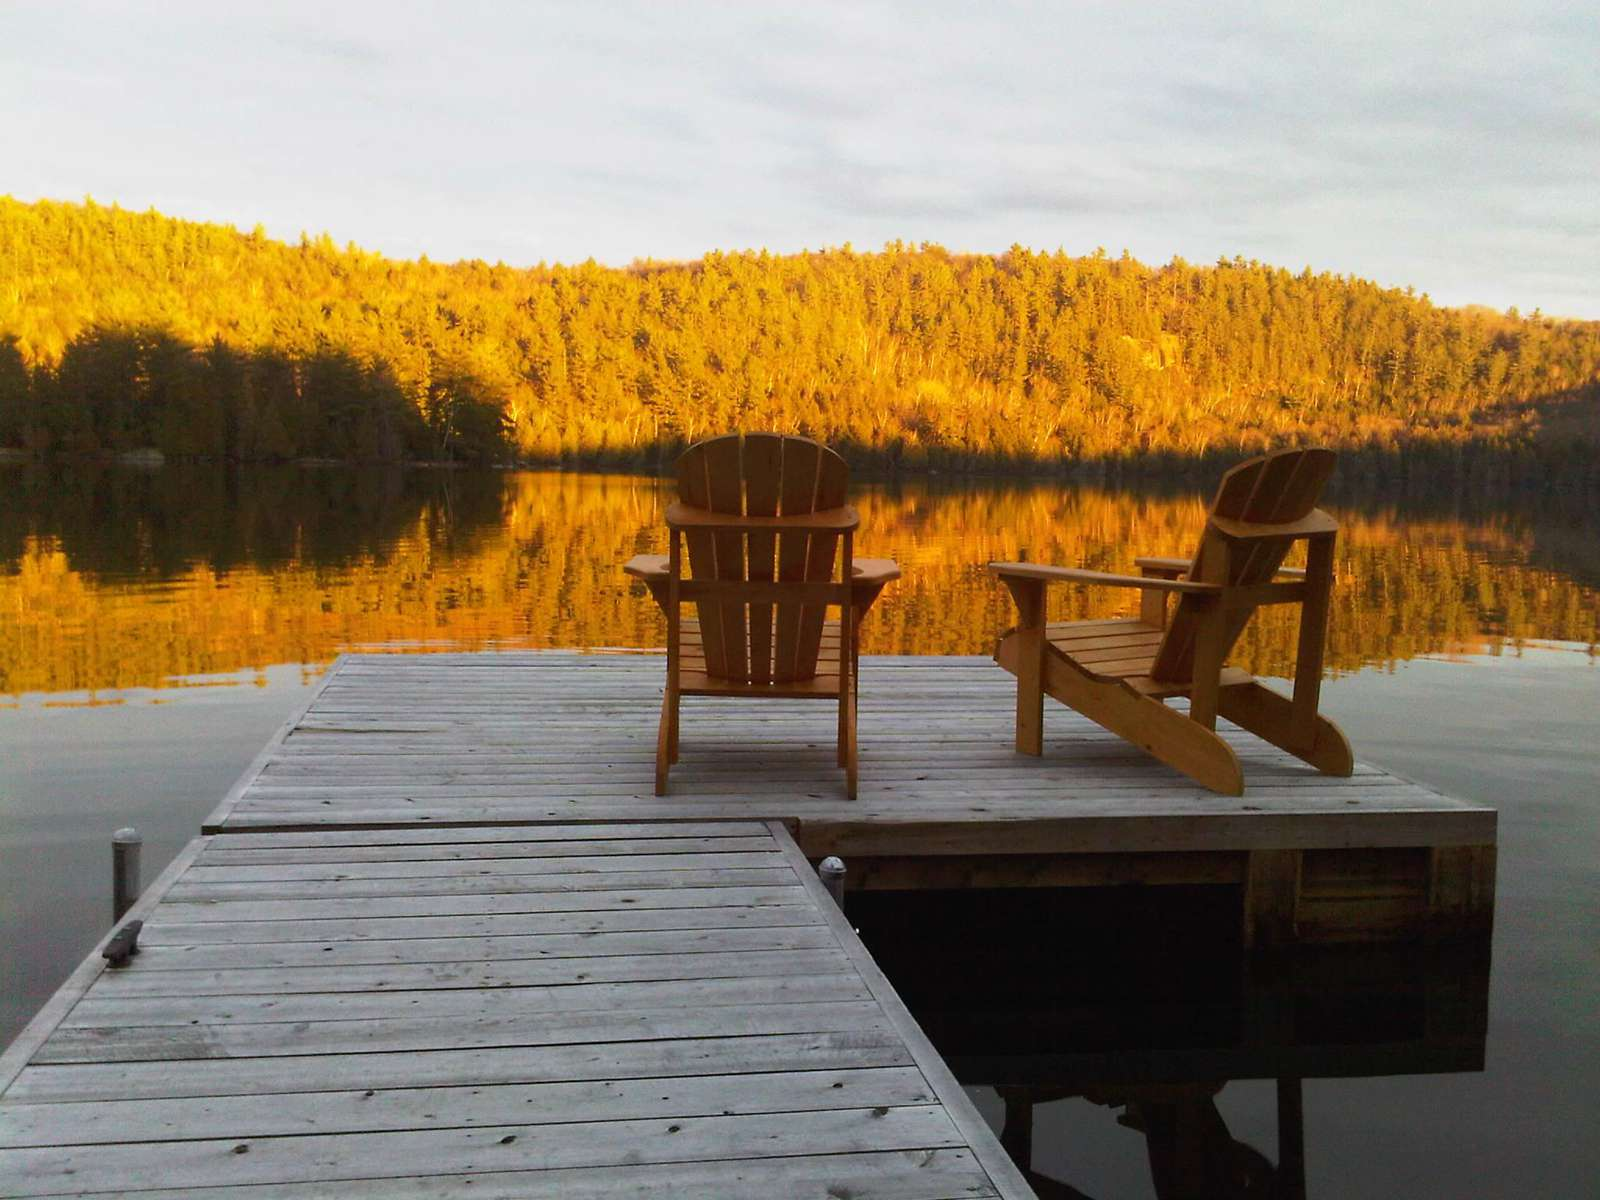 Incredible fall afternoon from the dock